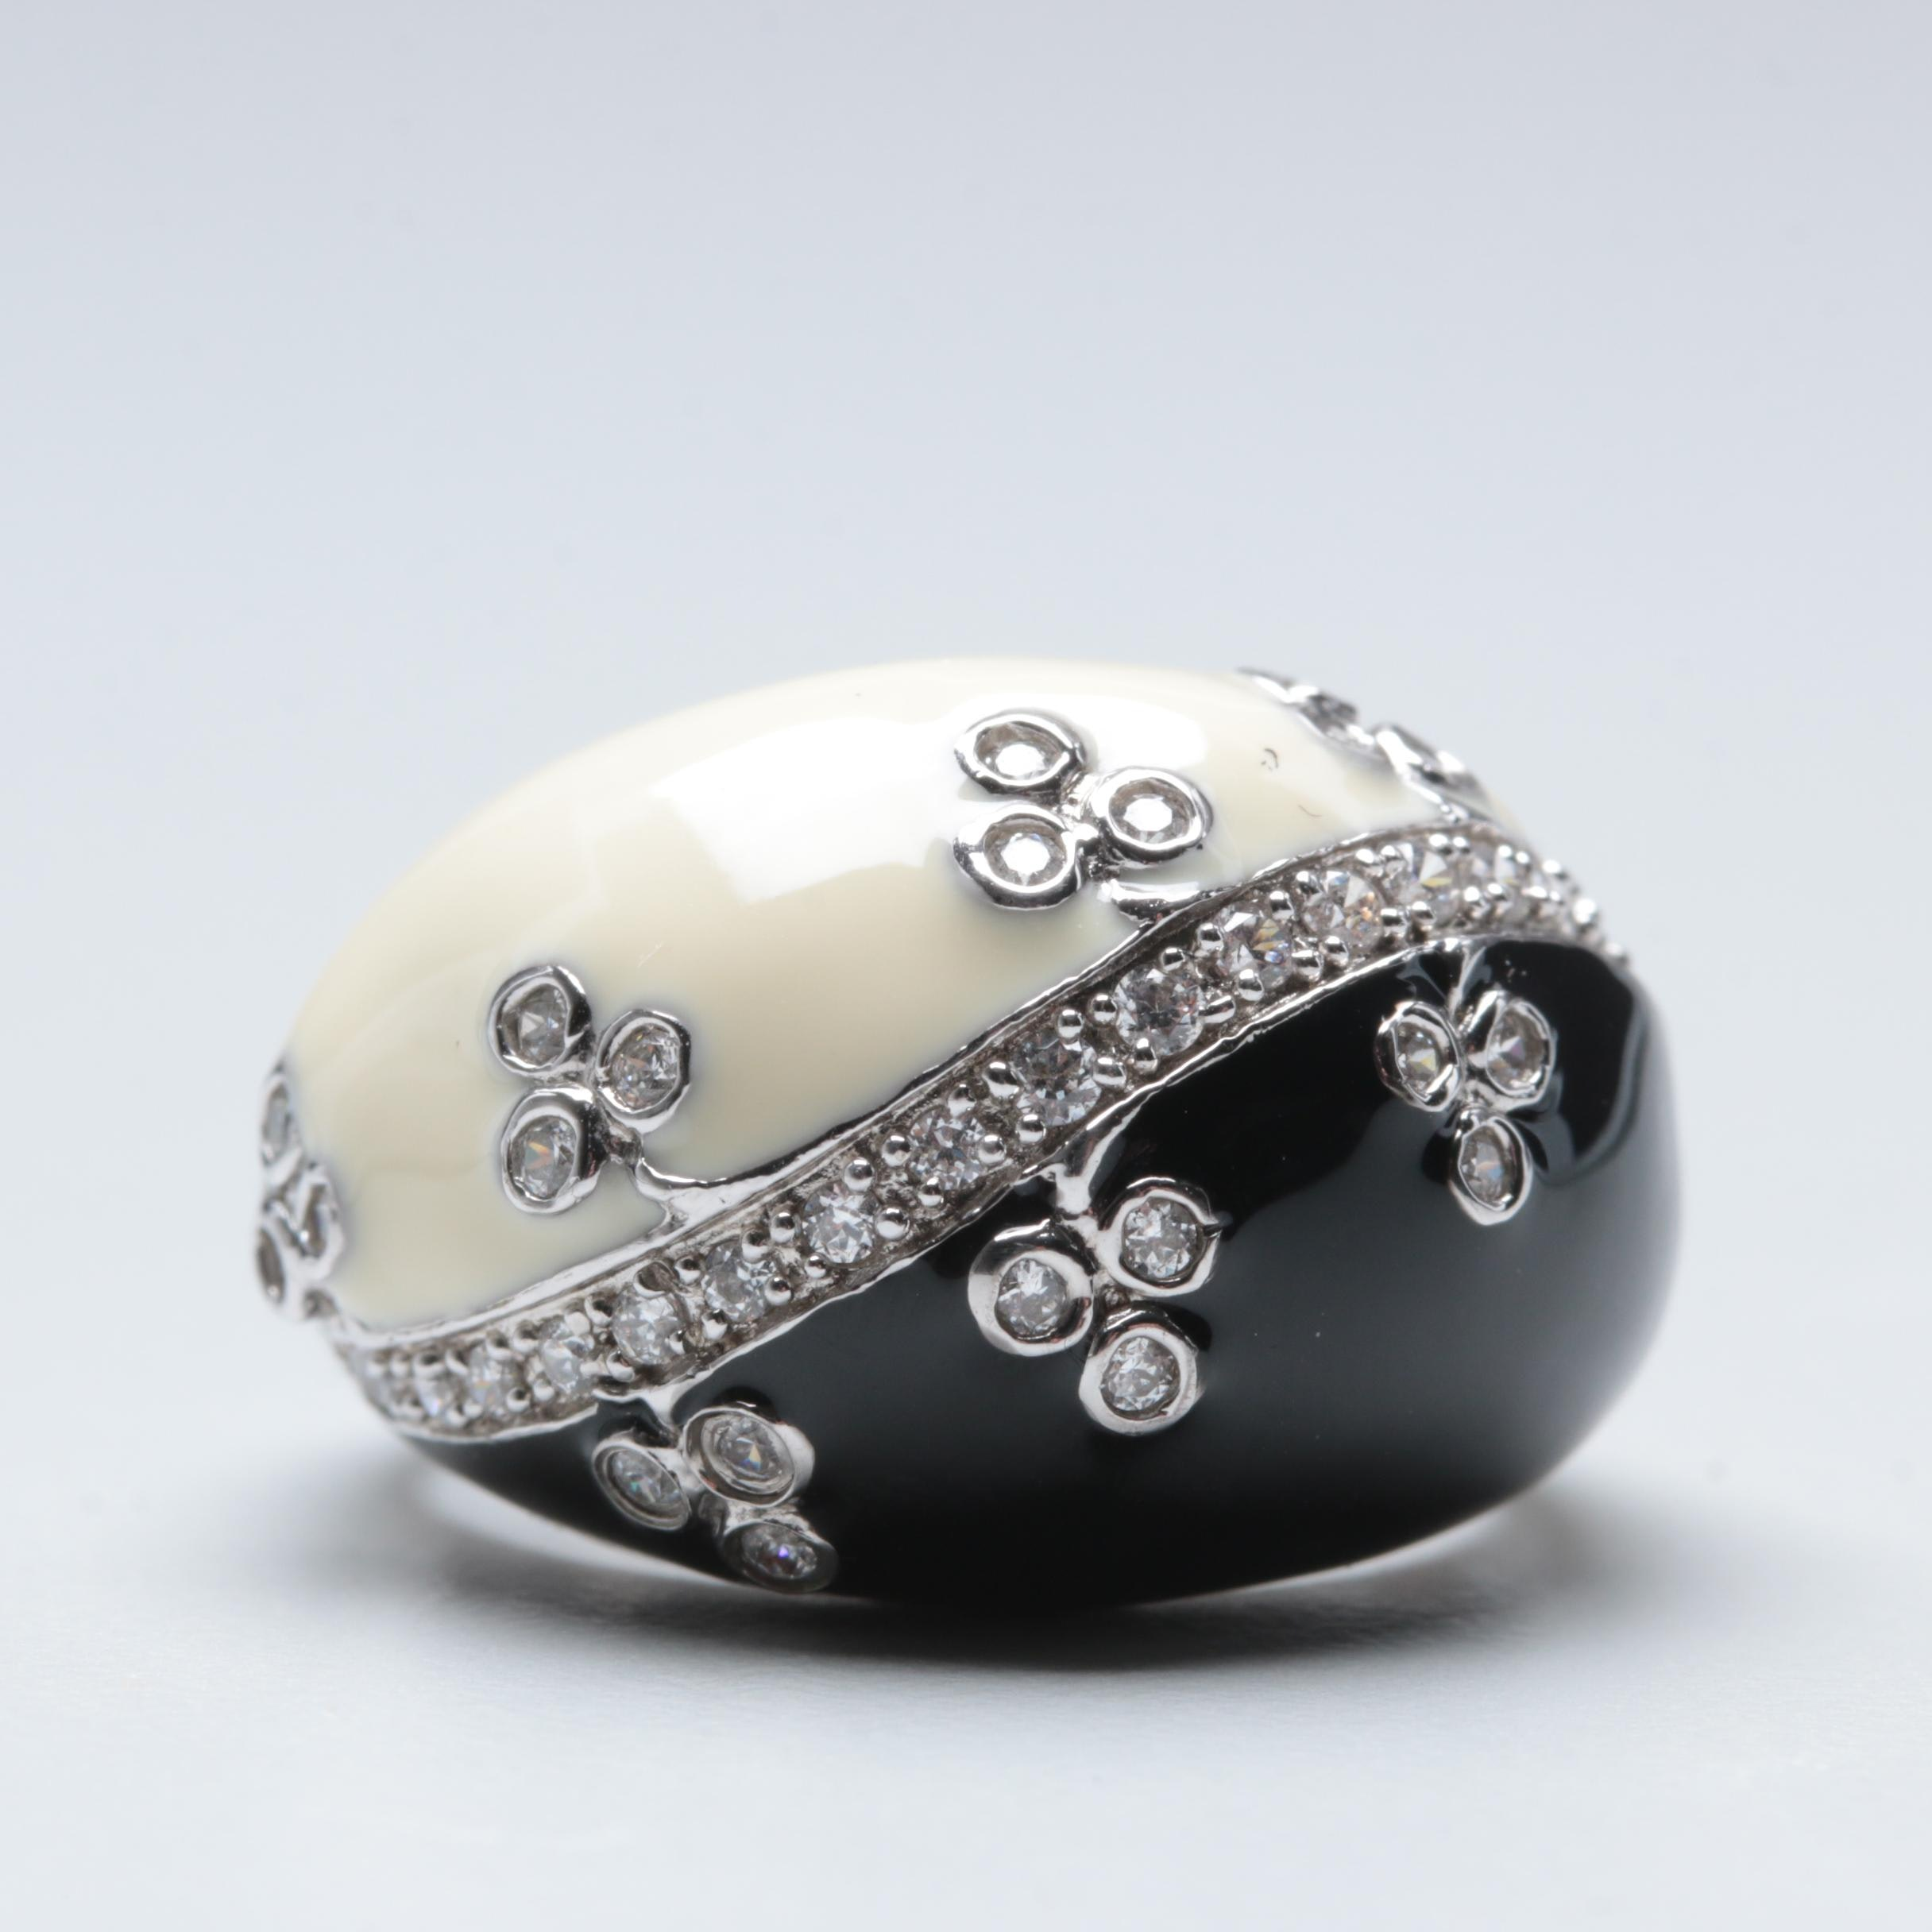 Sterling Silver Black and Cream Enamel Ring with Cubic Zirconia Accents